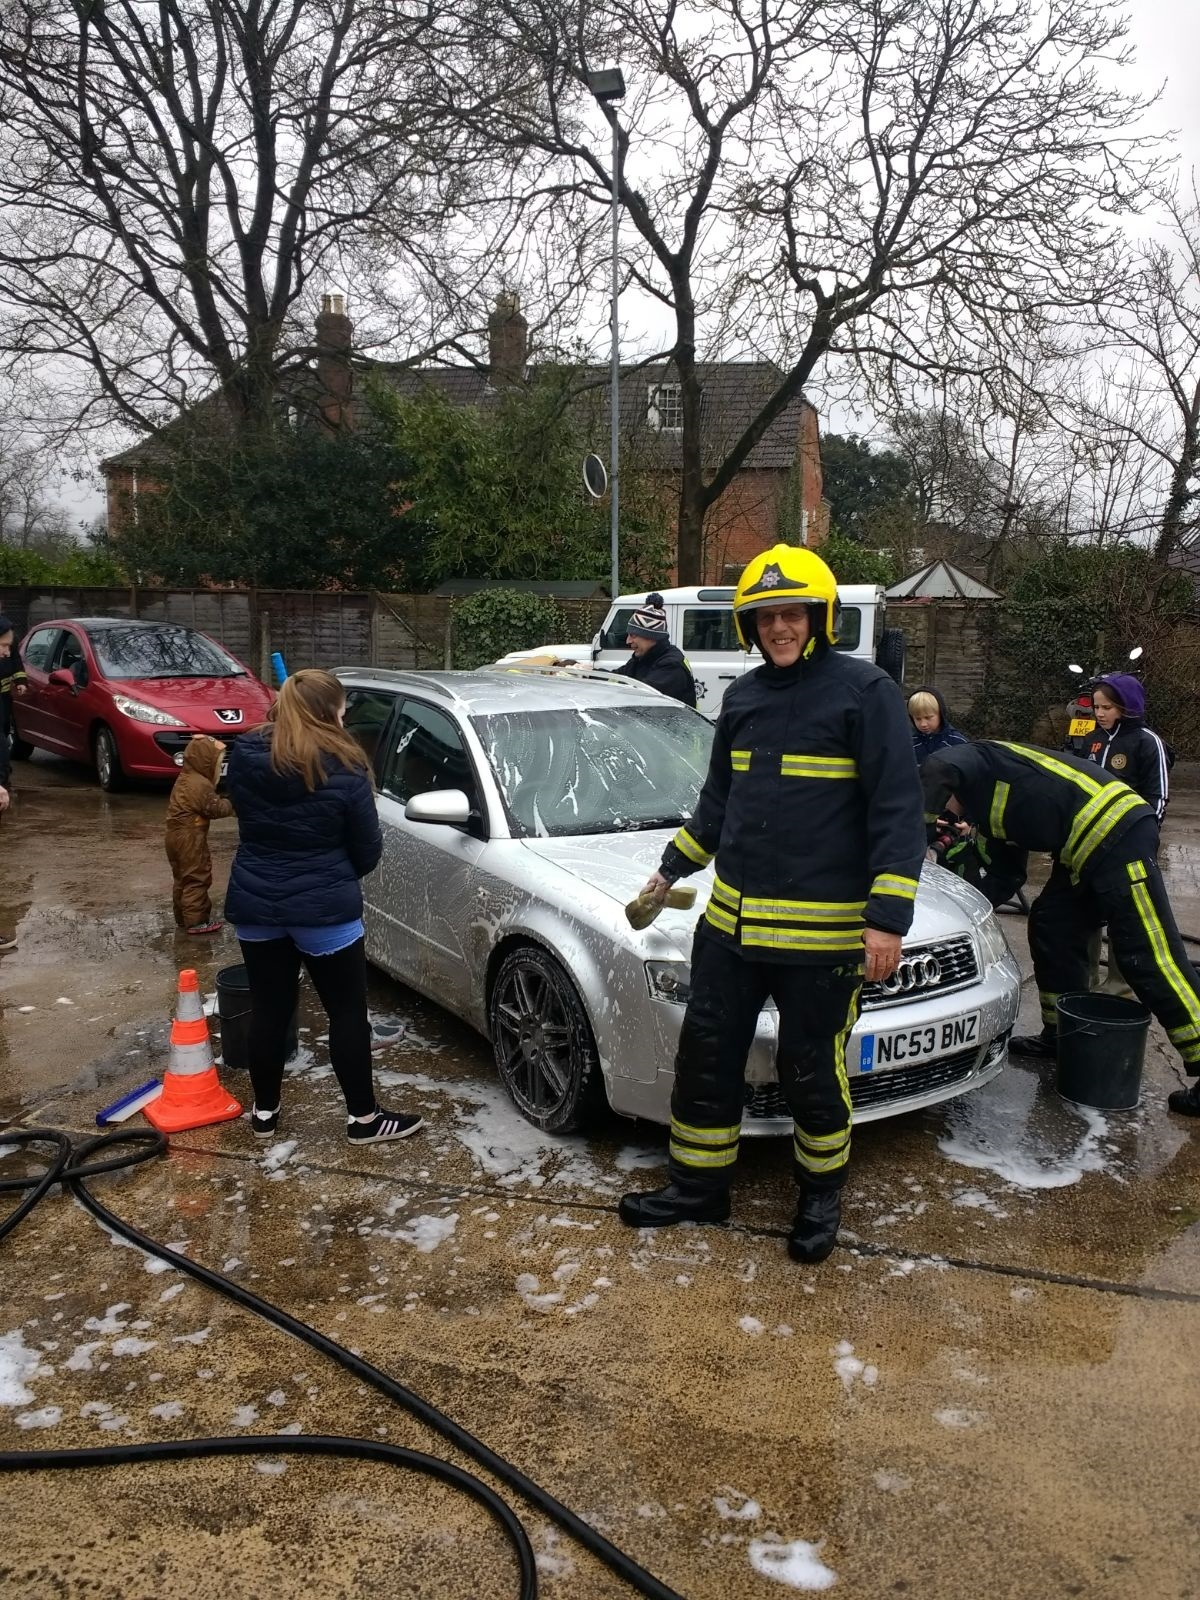 Mike Angel at the Devizes Fire Station car wash.